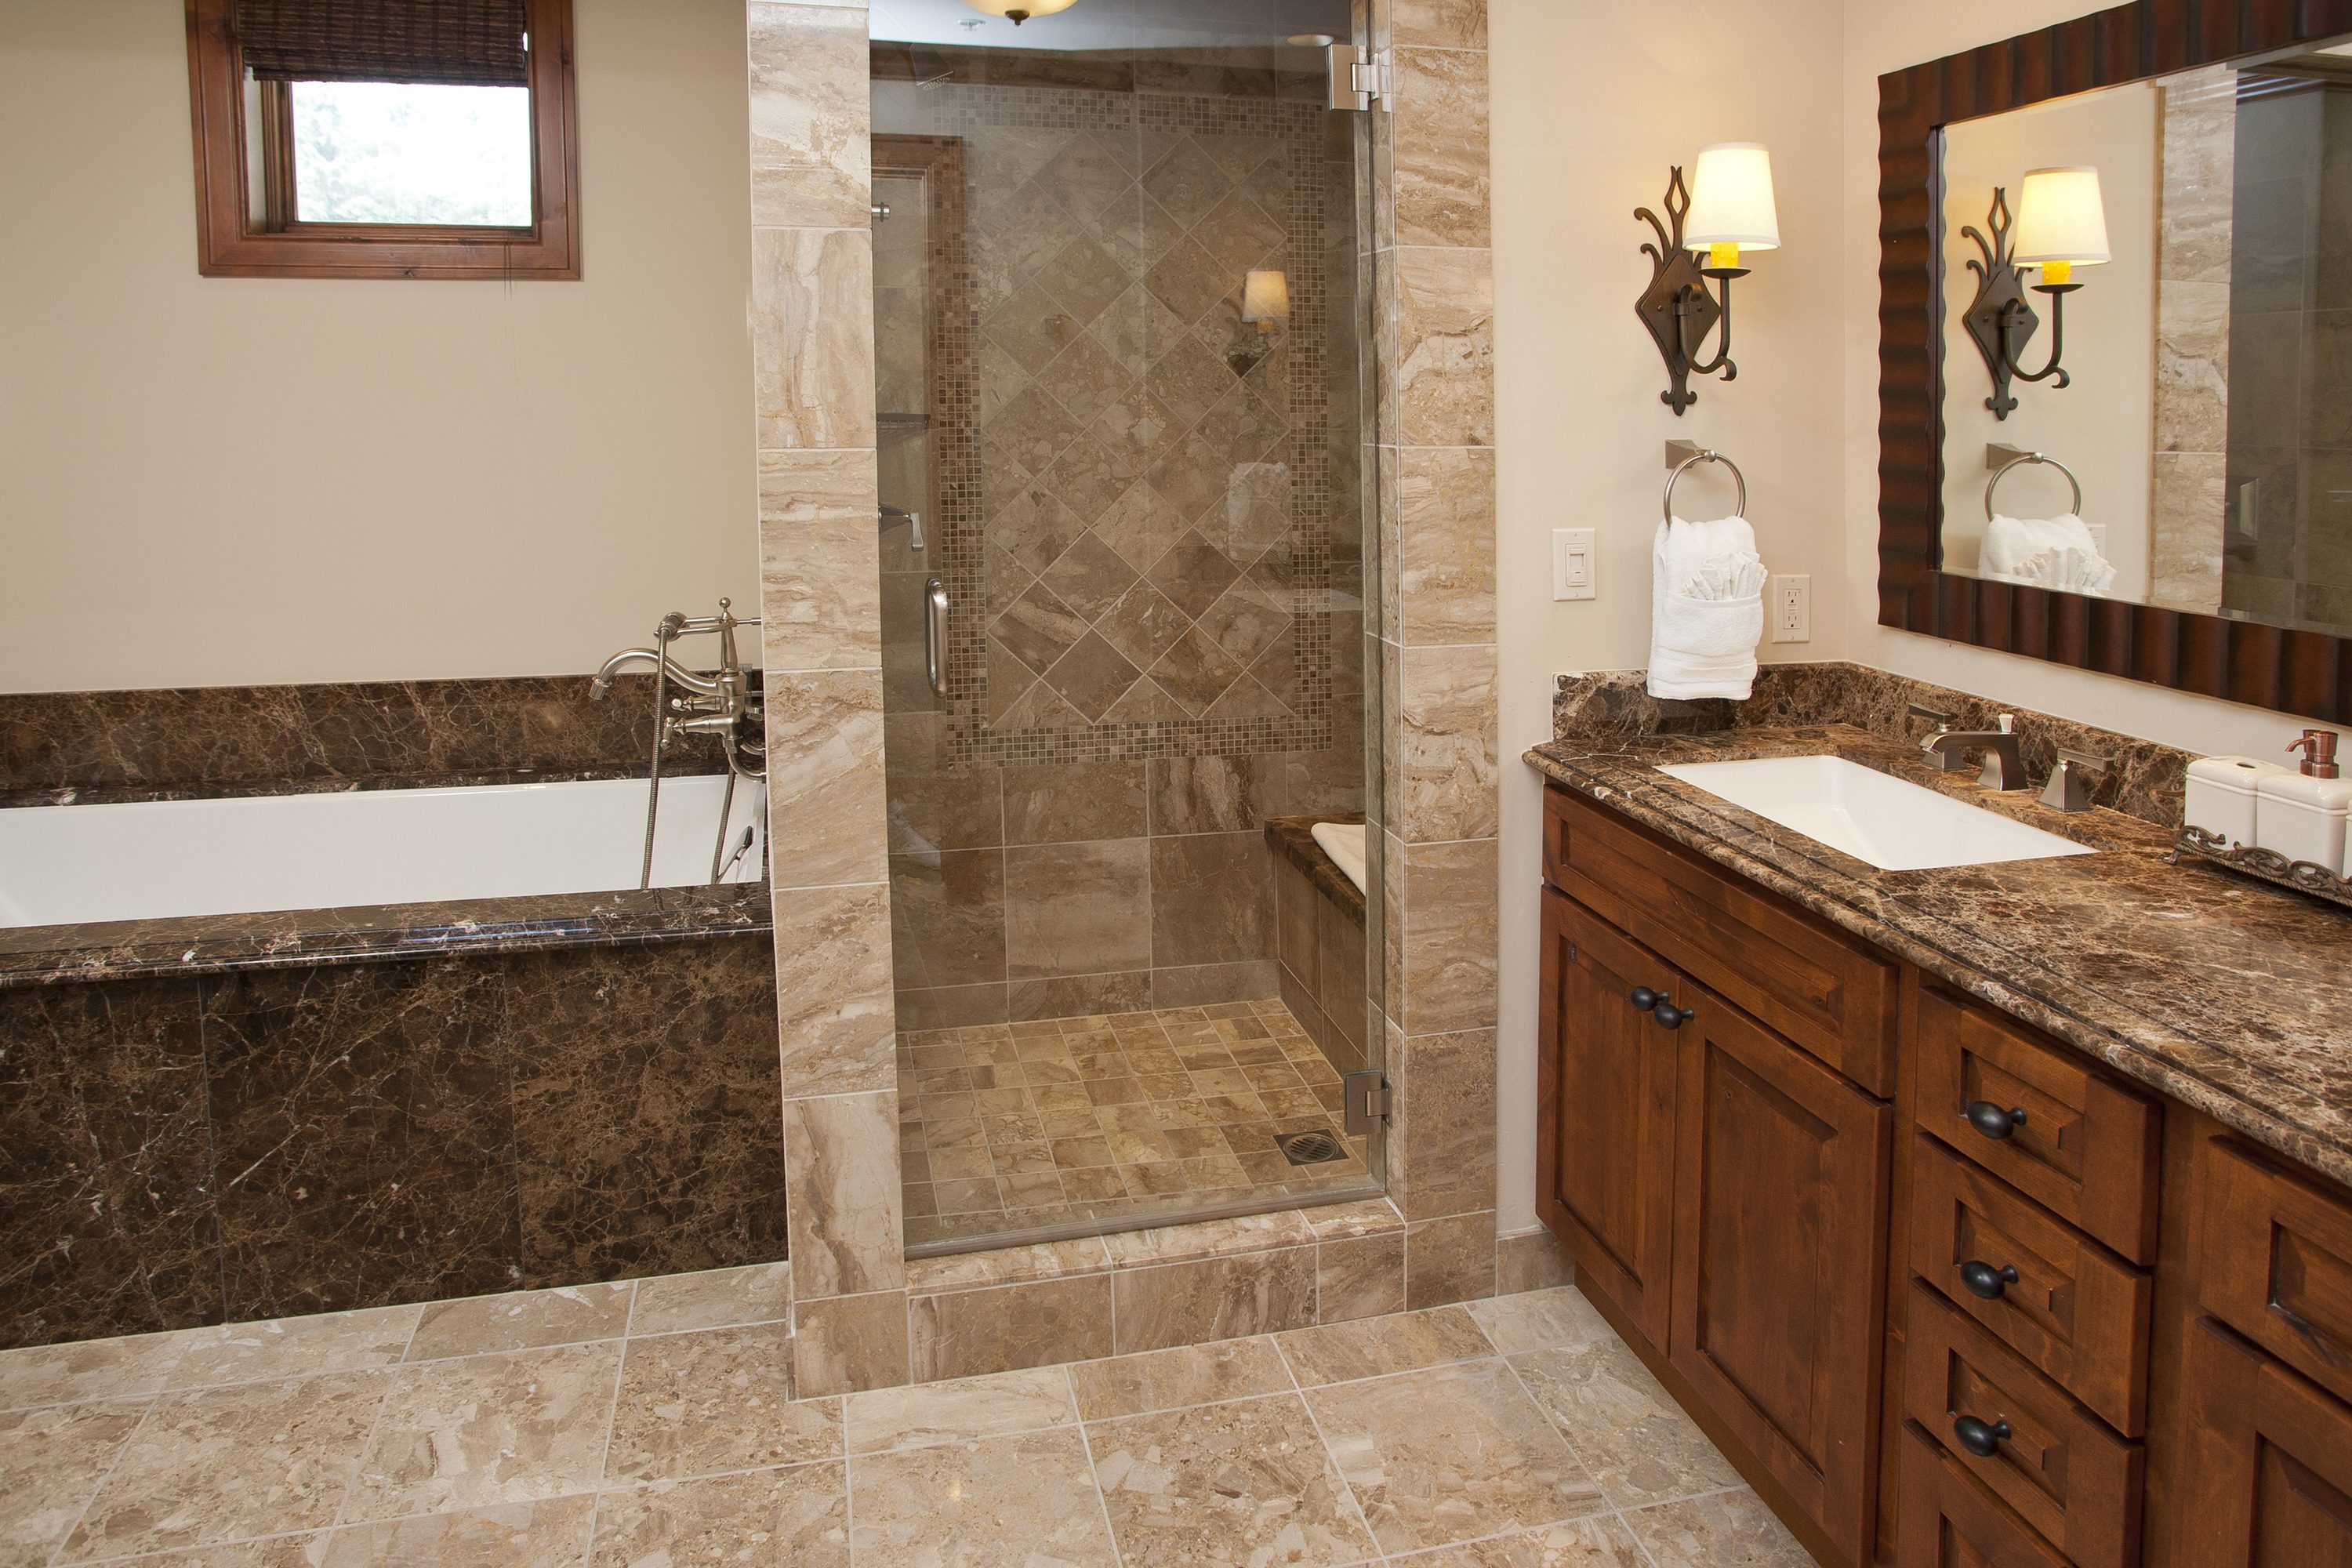 Spacious master bathroom and deep soak tub with natural light